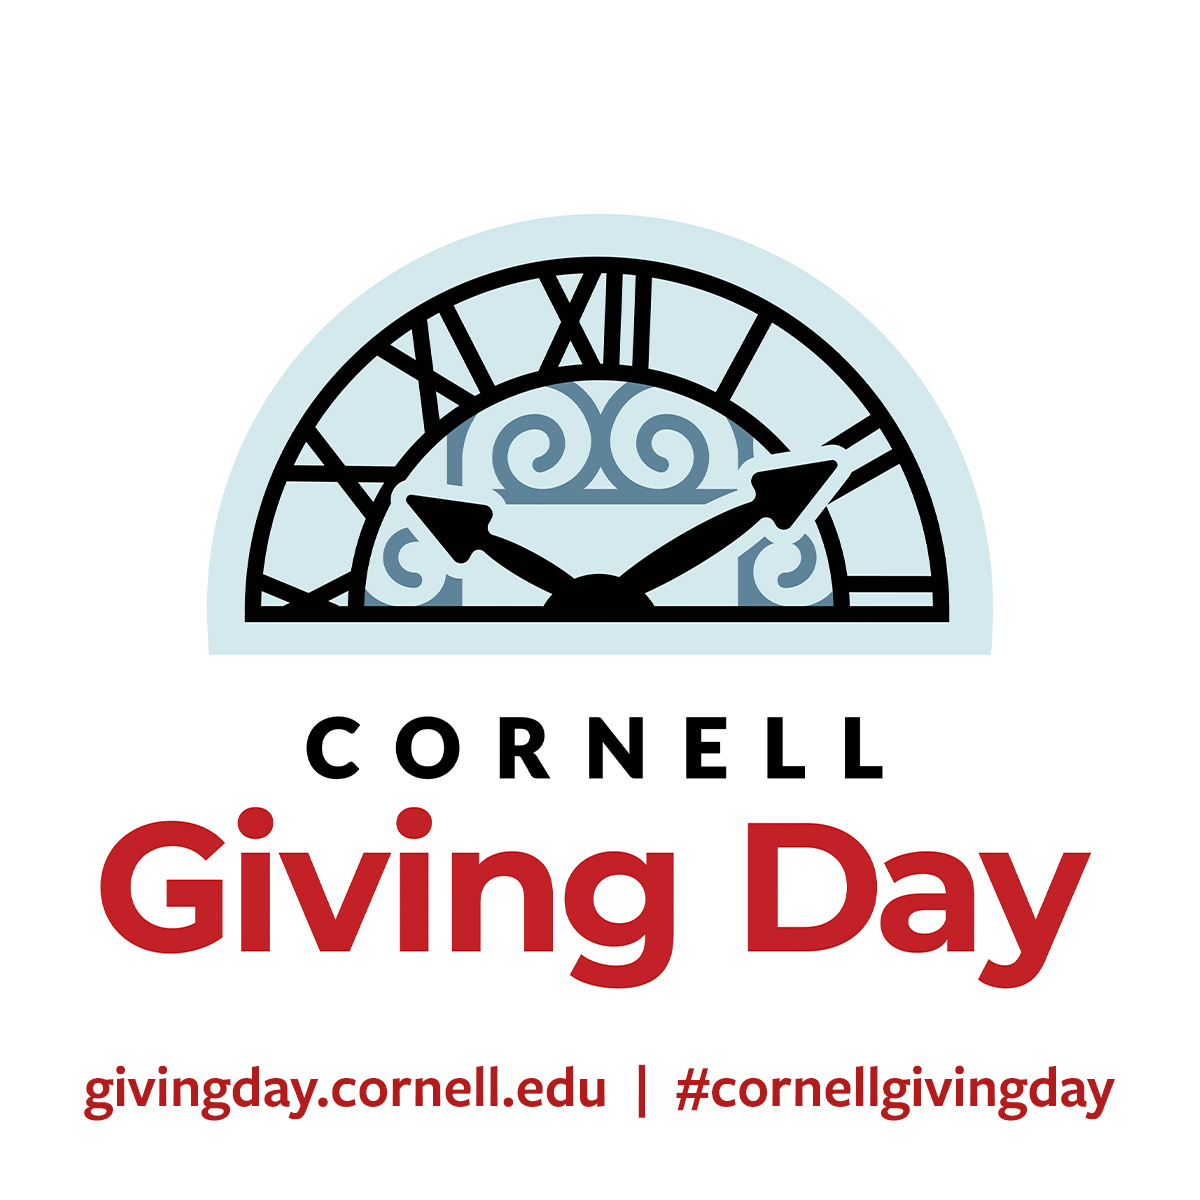 Logo Profile 2 -- Cornell Giving Day clock logo with Giving Day site URL and hashtag